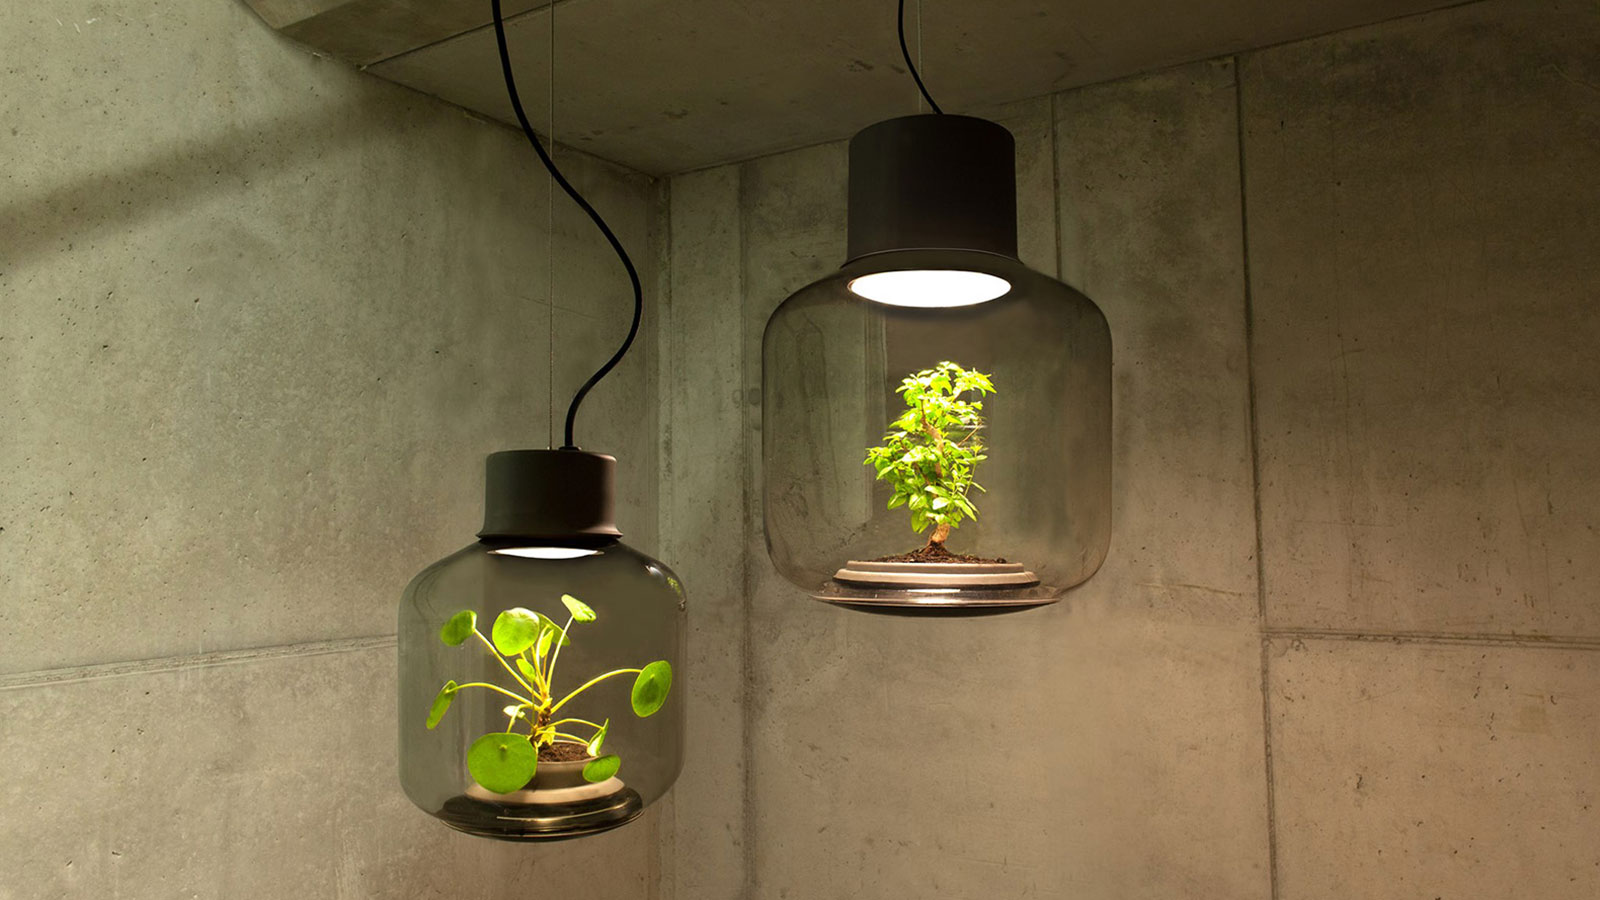 MYGDAL PLANTLAMP: NO NATURAL LIGHT NEEDED